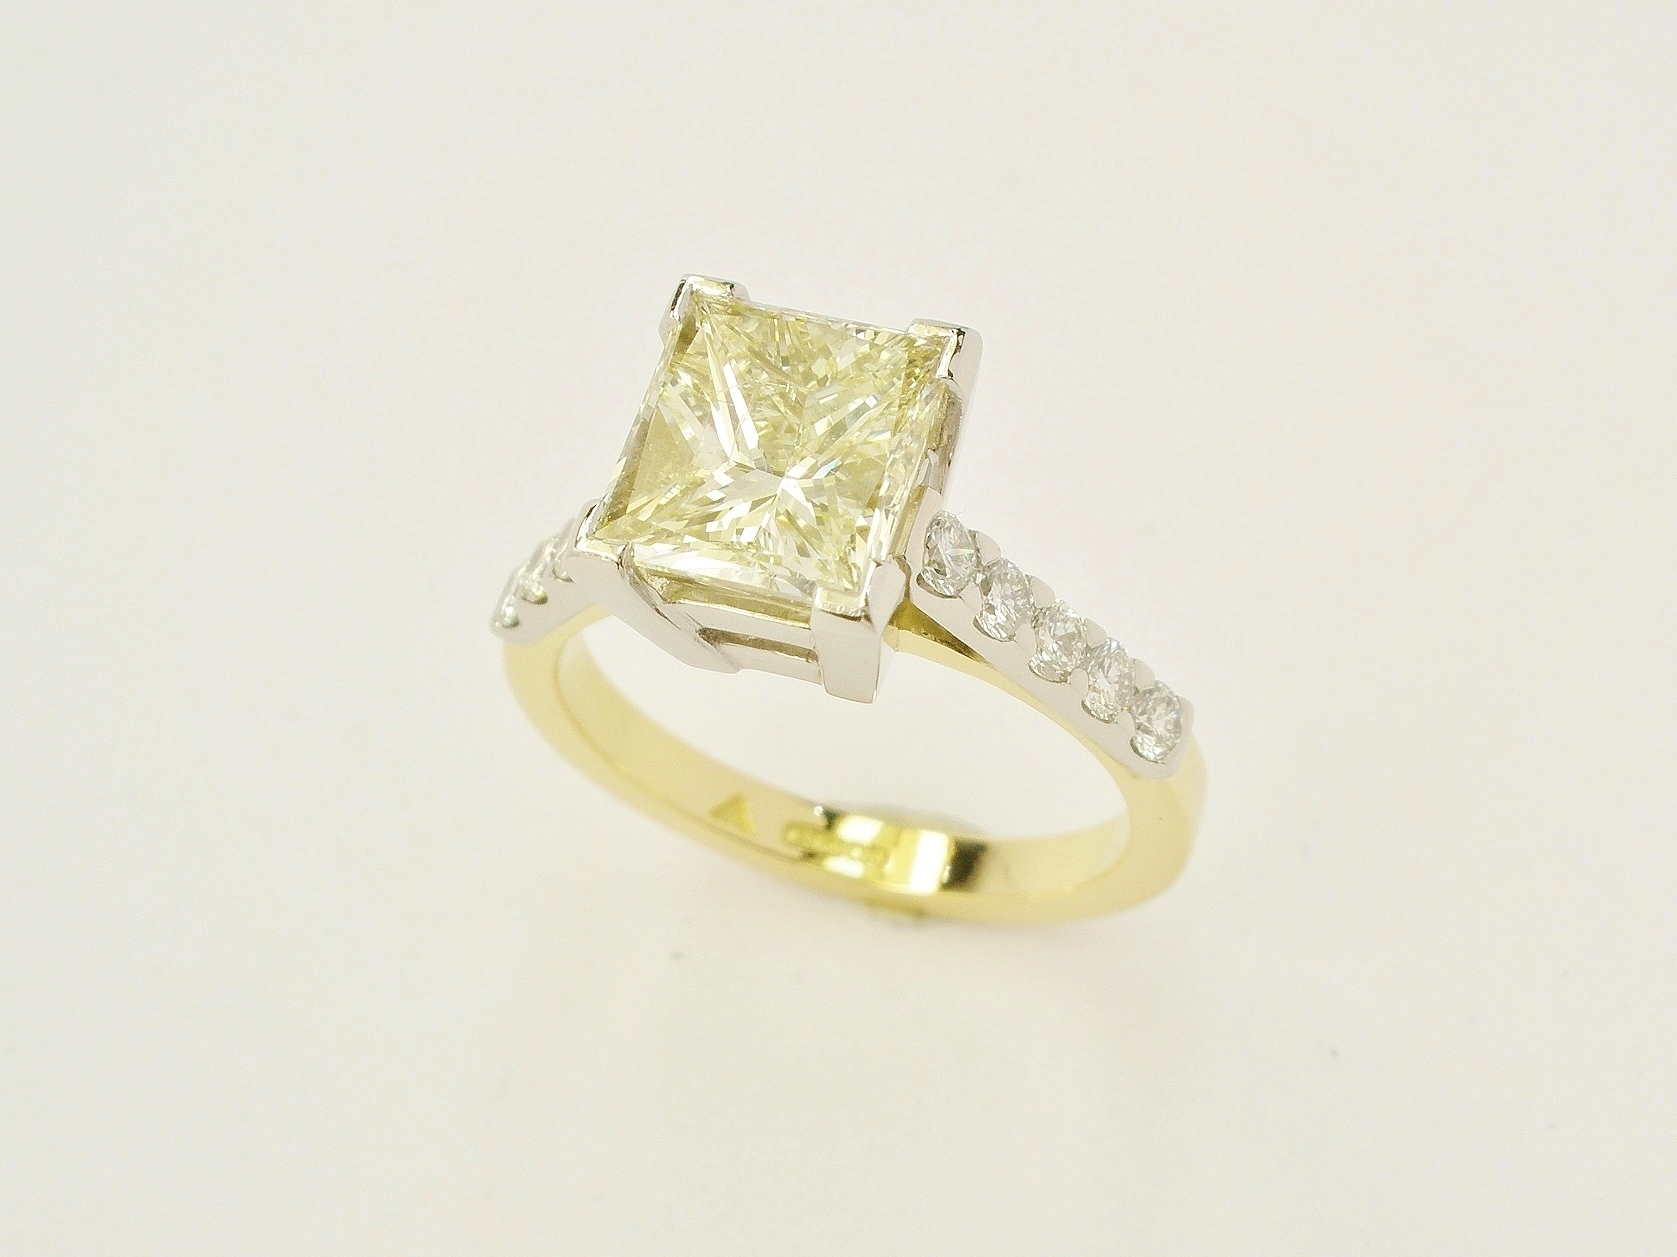 2.01ct. champagne colour princess cut diamond 18ct. yellow gold & platinum ring with 'D' colour round brilliant cut diamonds cut-down set in.